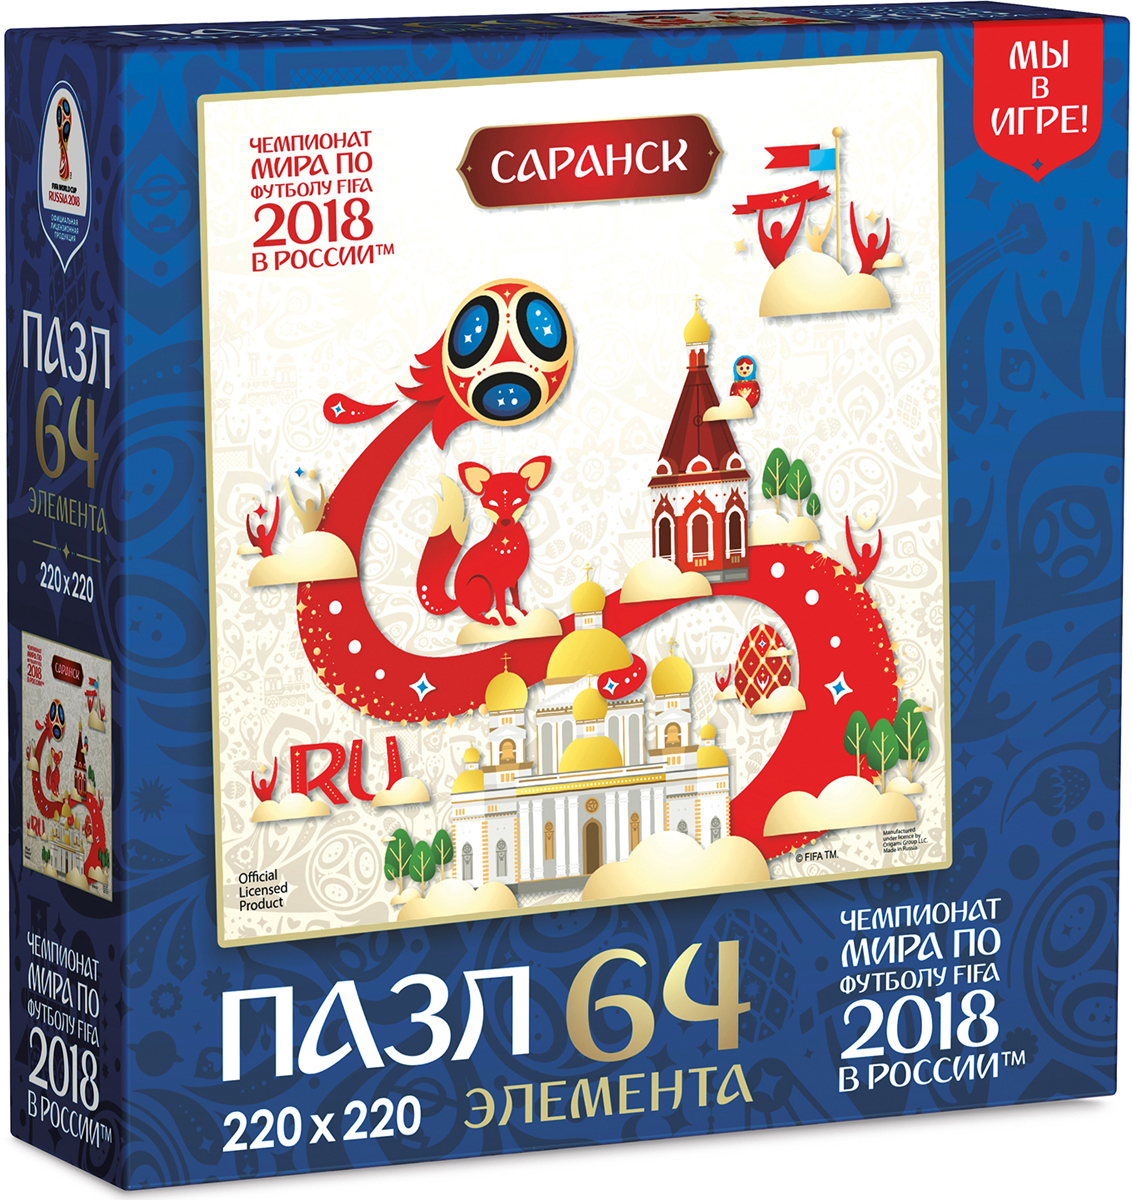 FIFA World Cup Russia 2018 Пазл Look Саранск 03879